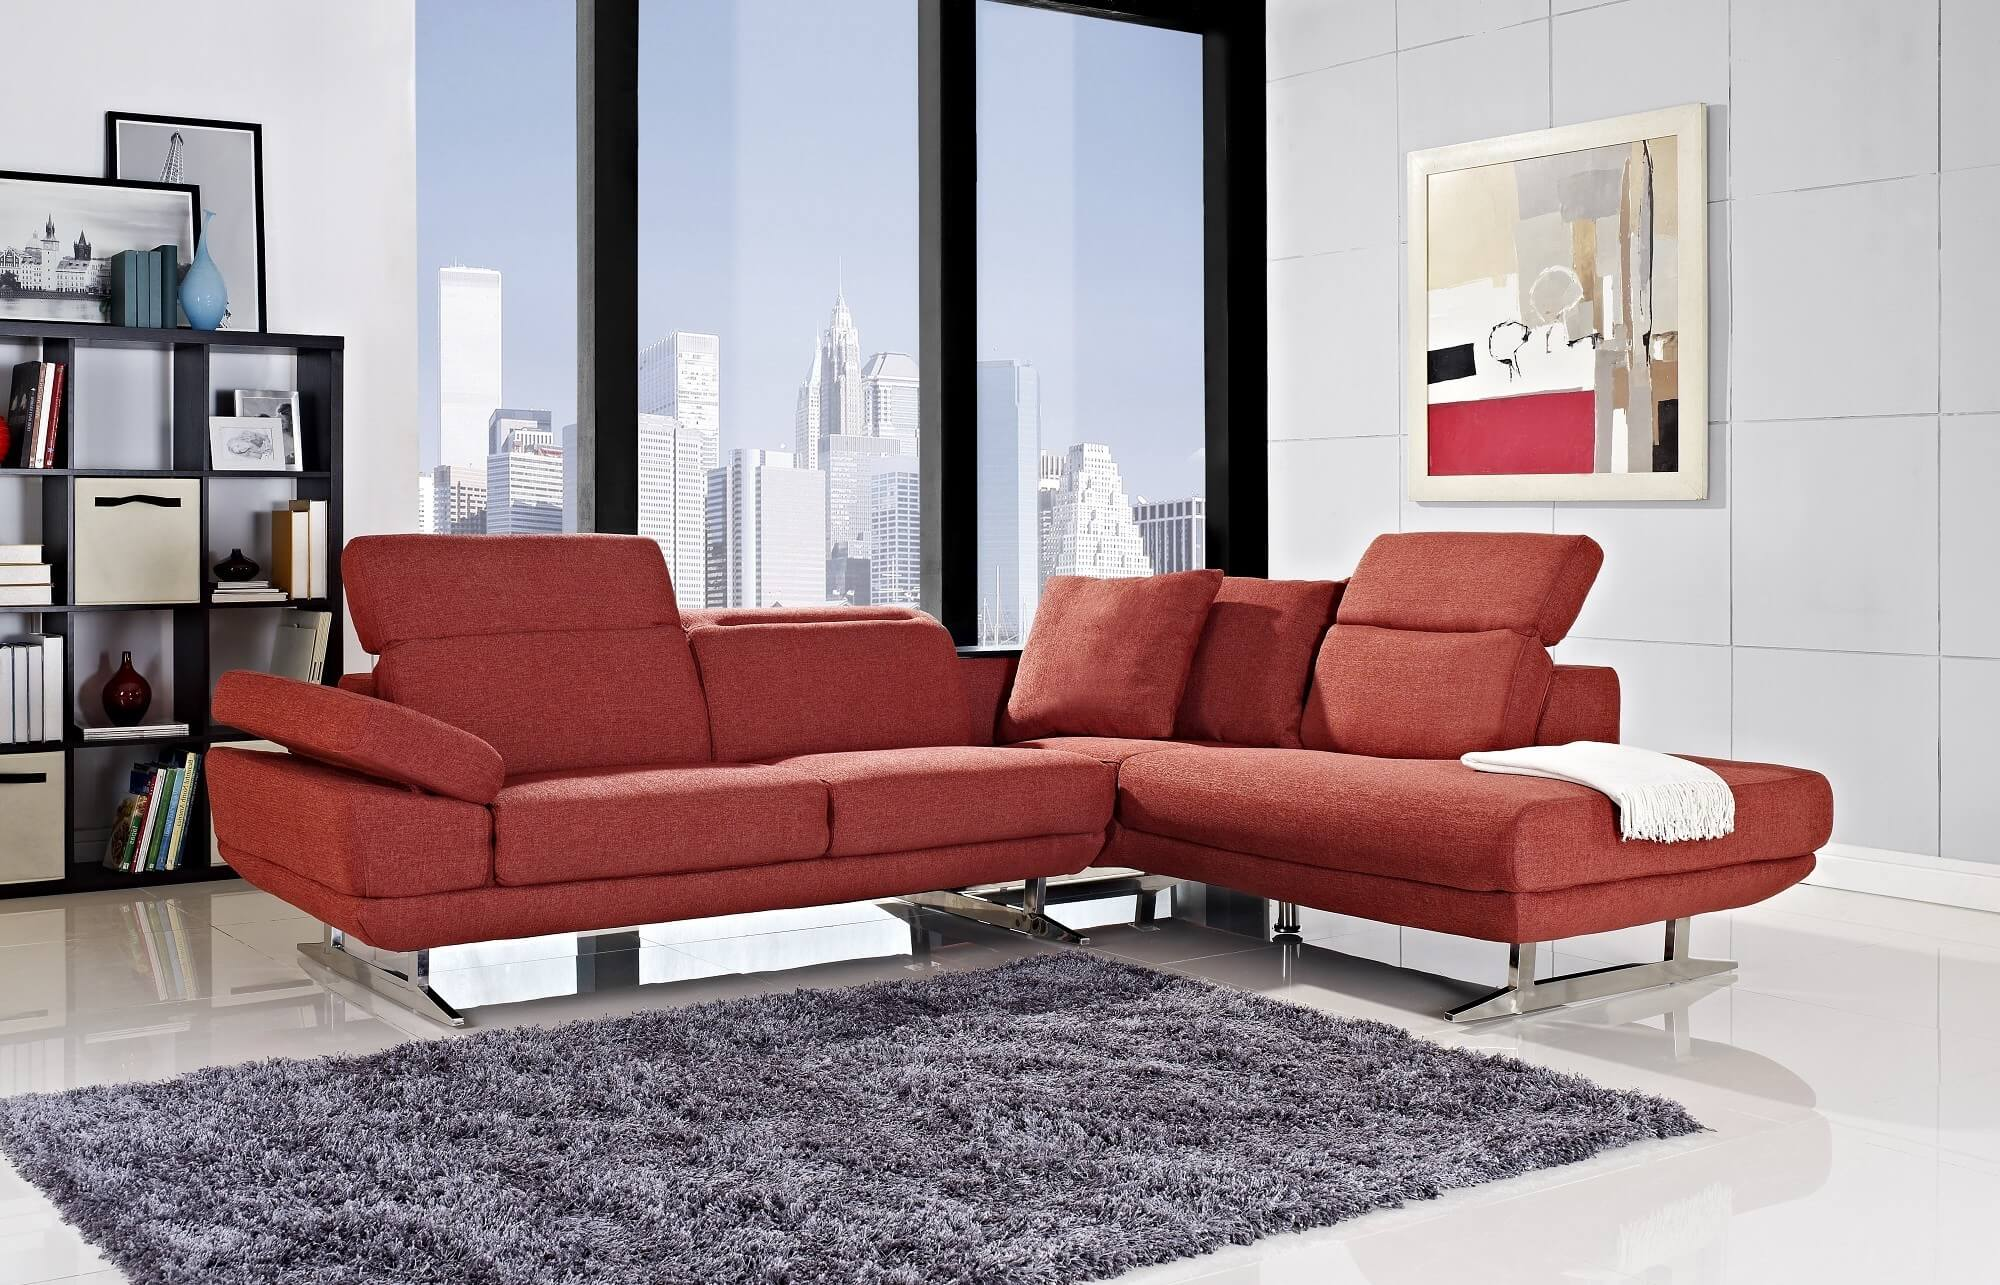 Orange Red Modern Sectional With Adjustable Headrests